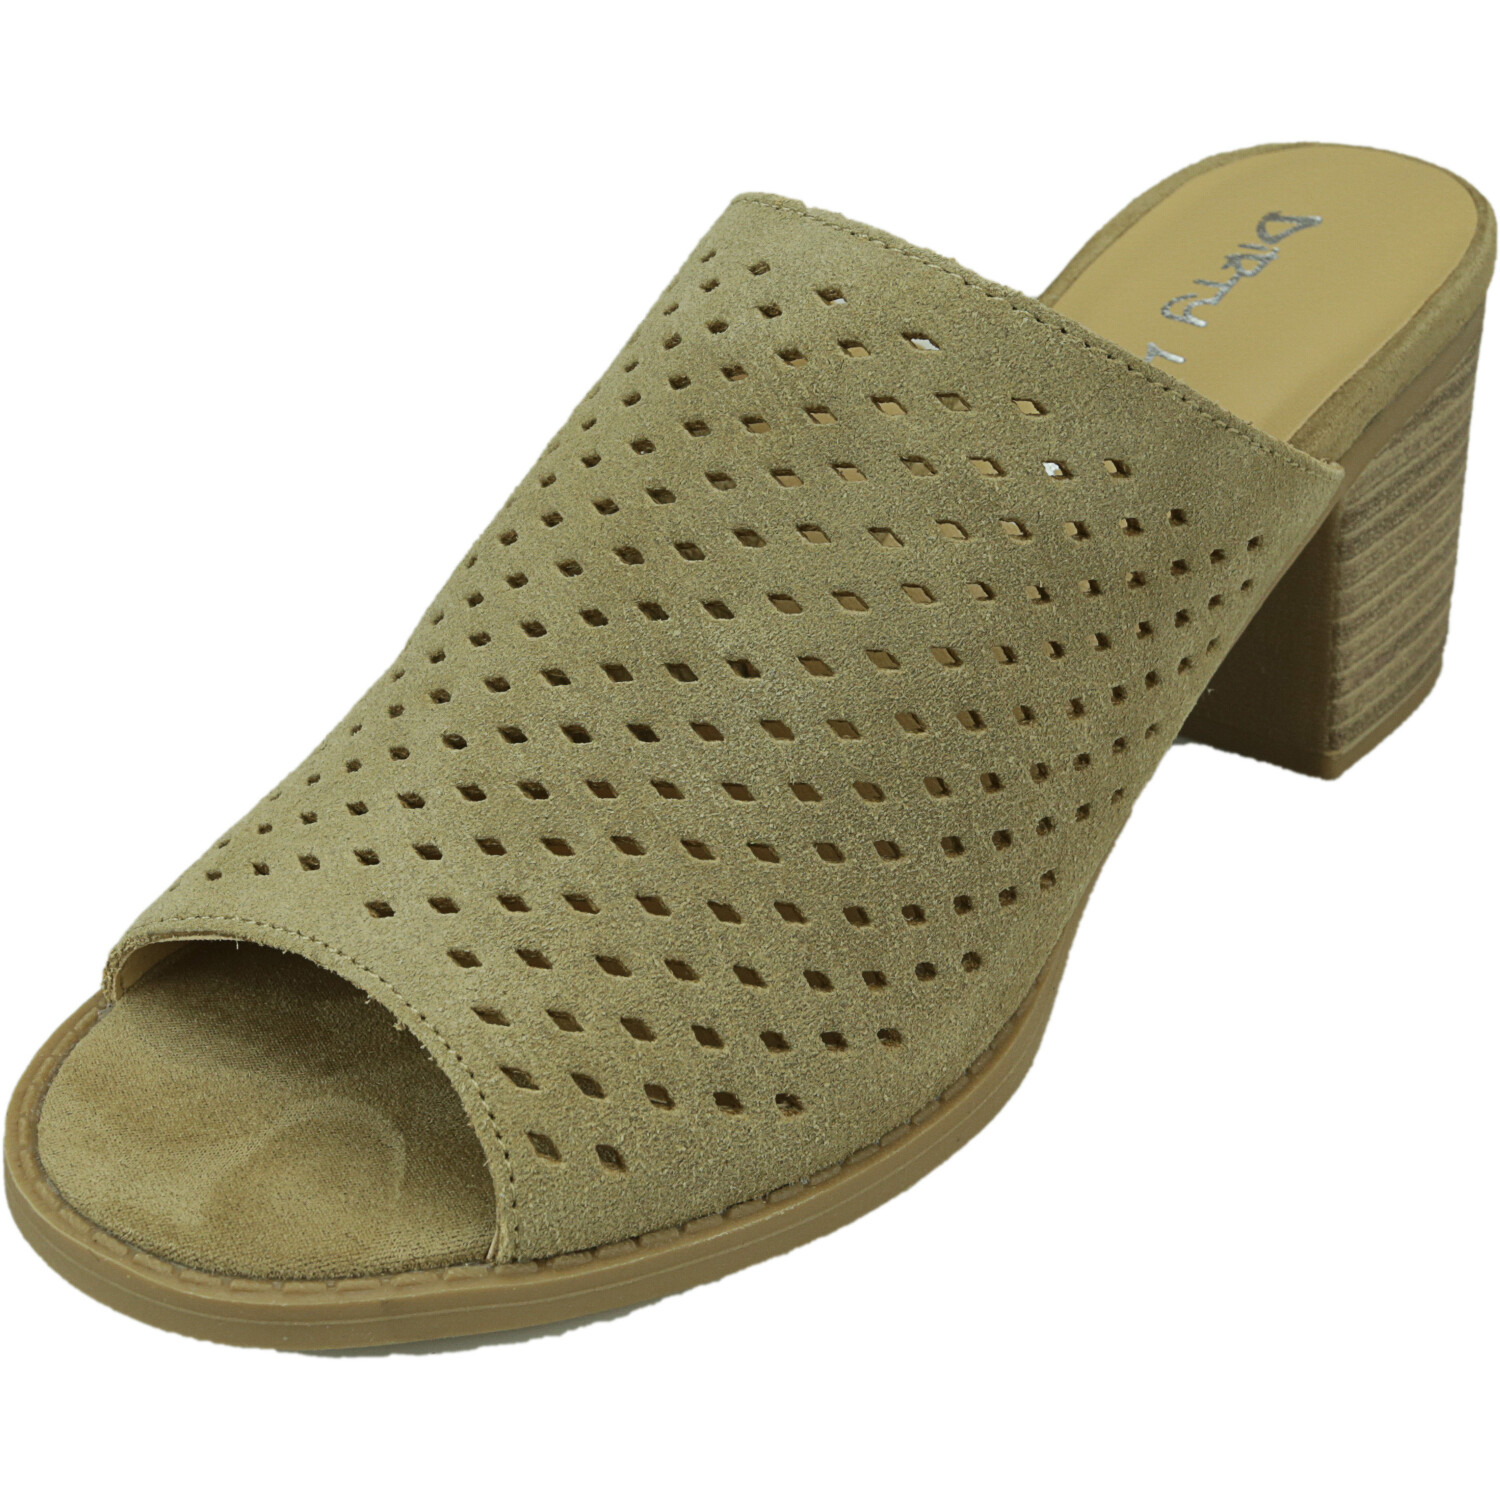 Dirty Laundry Women's Take All Suede Camel Heel - 7.5M